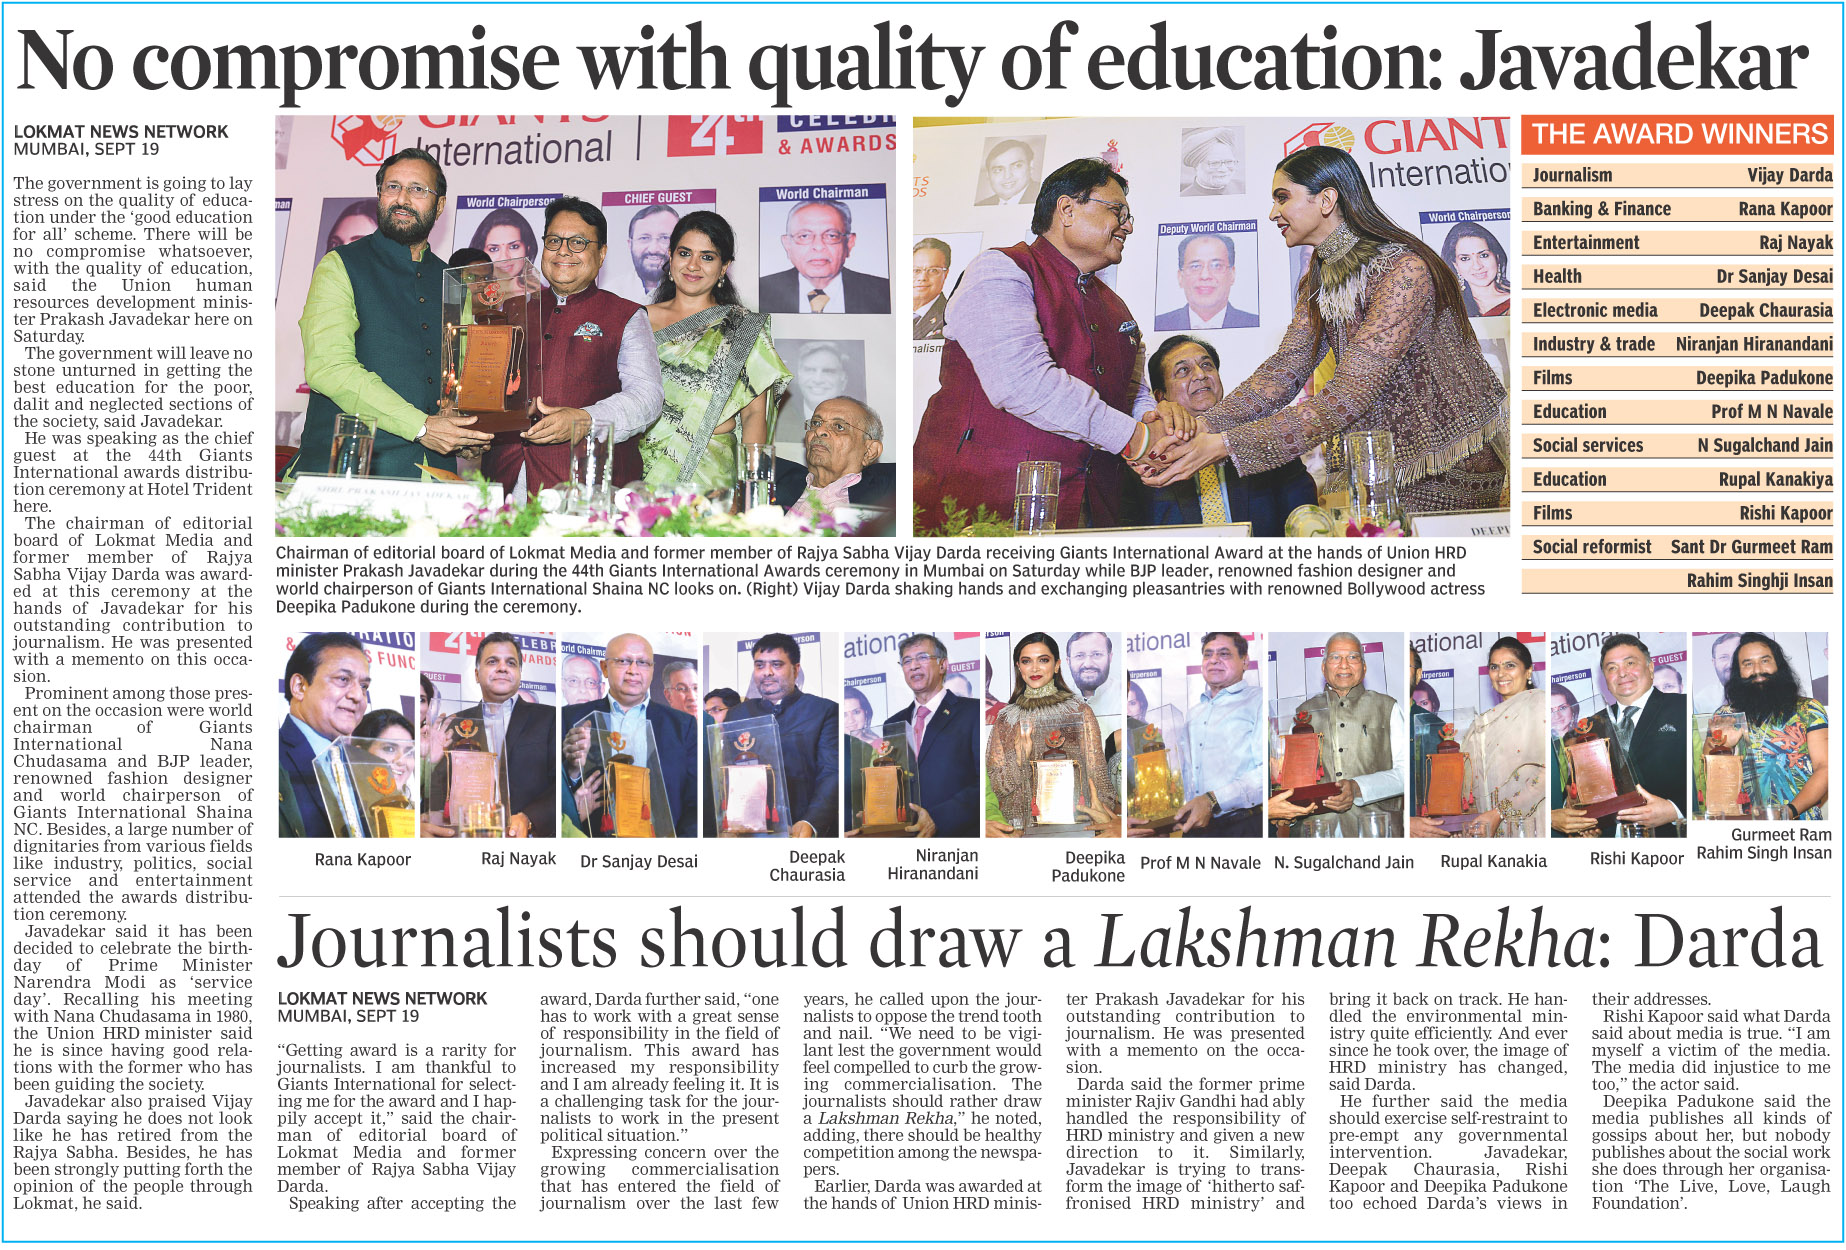 No compromise with quality of education: Javadekar